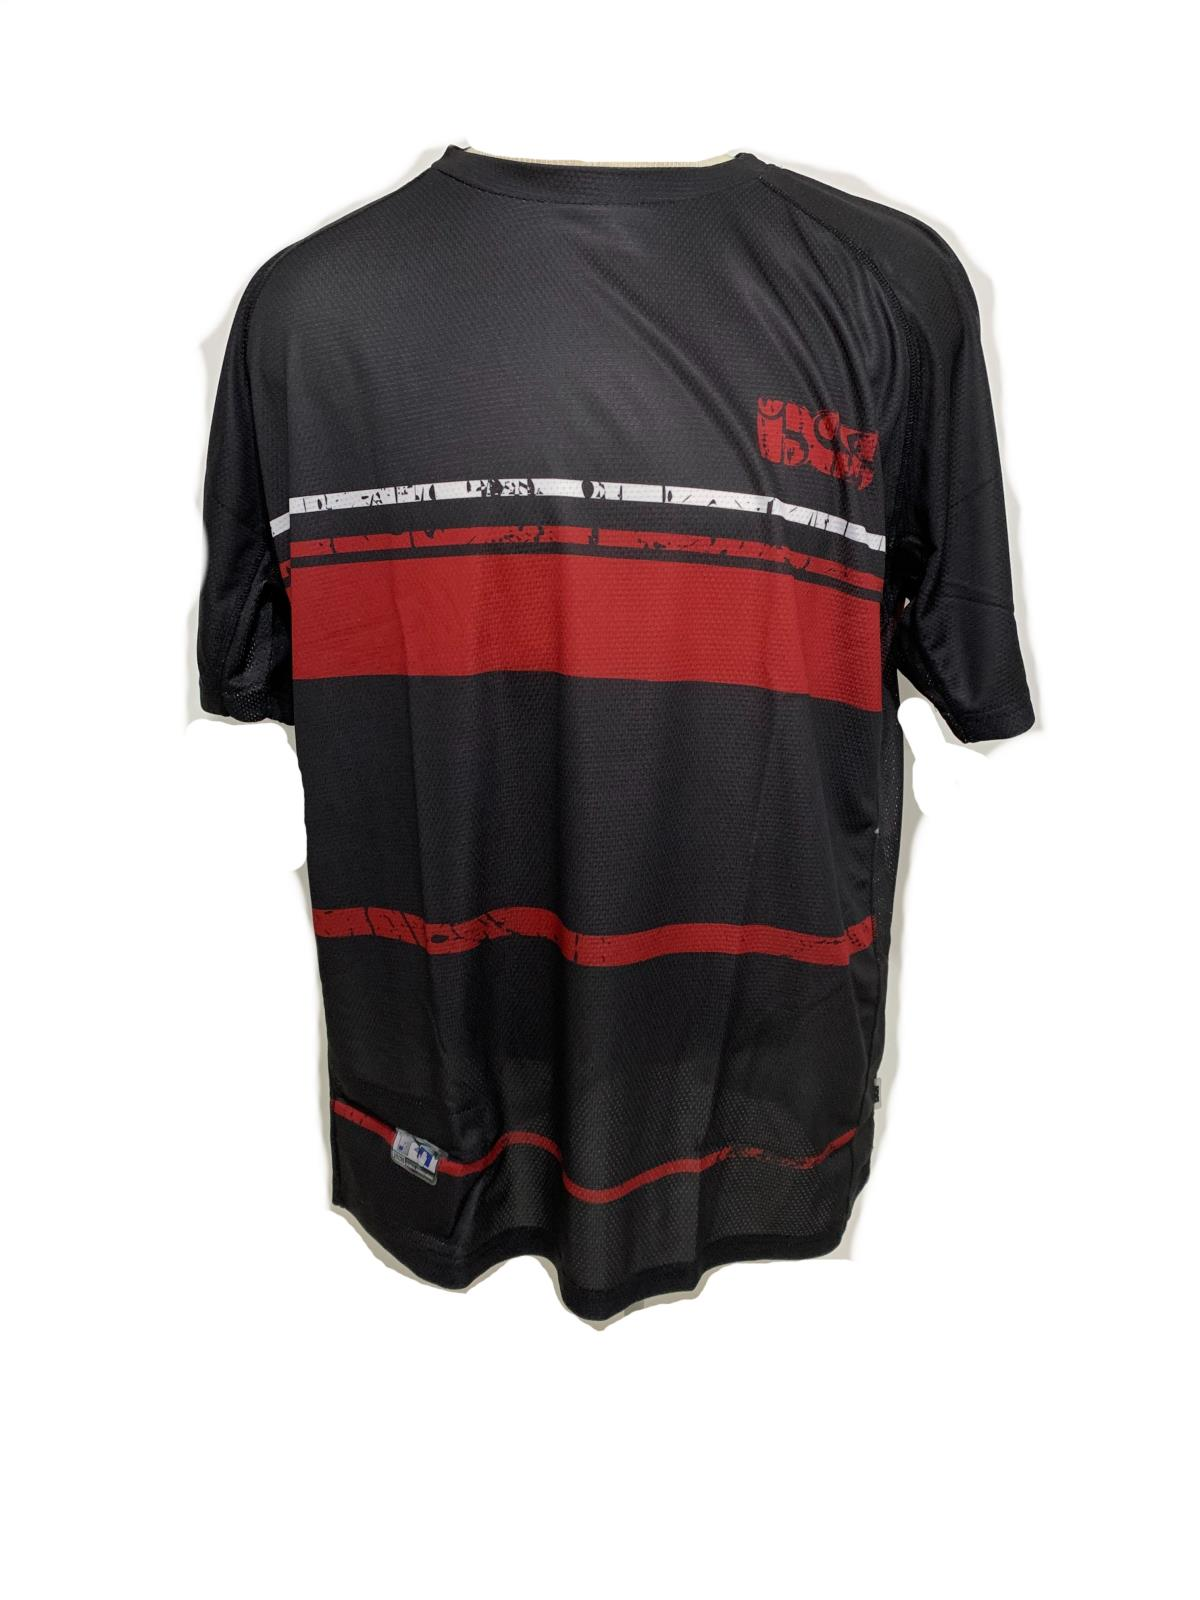 iXS  Scul BC Cycling Bike Bicycling Jersey Black XXL New